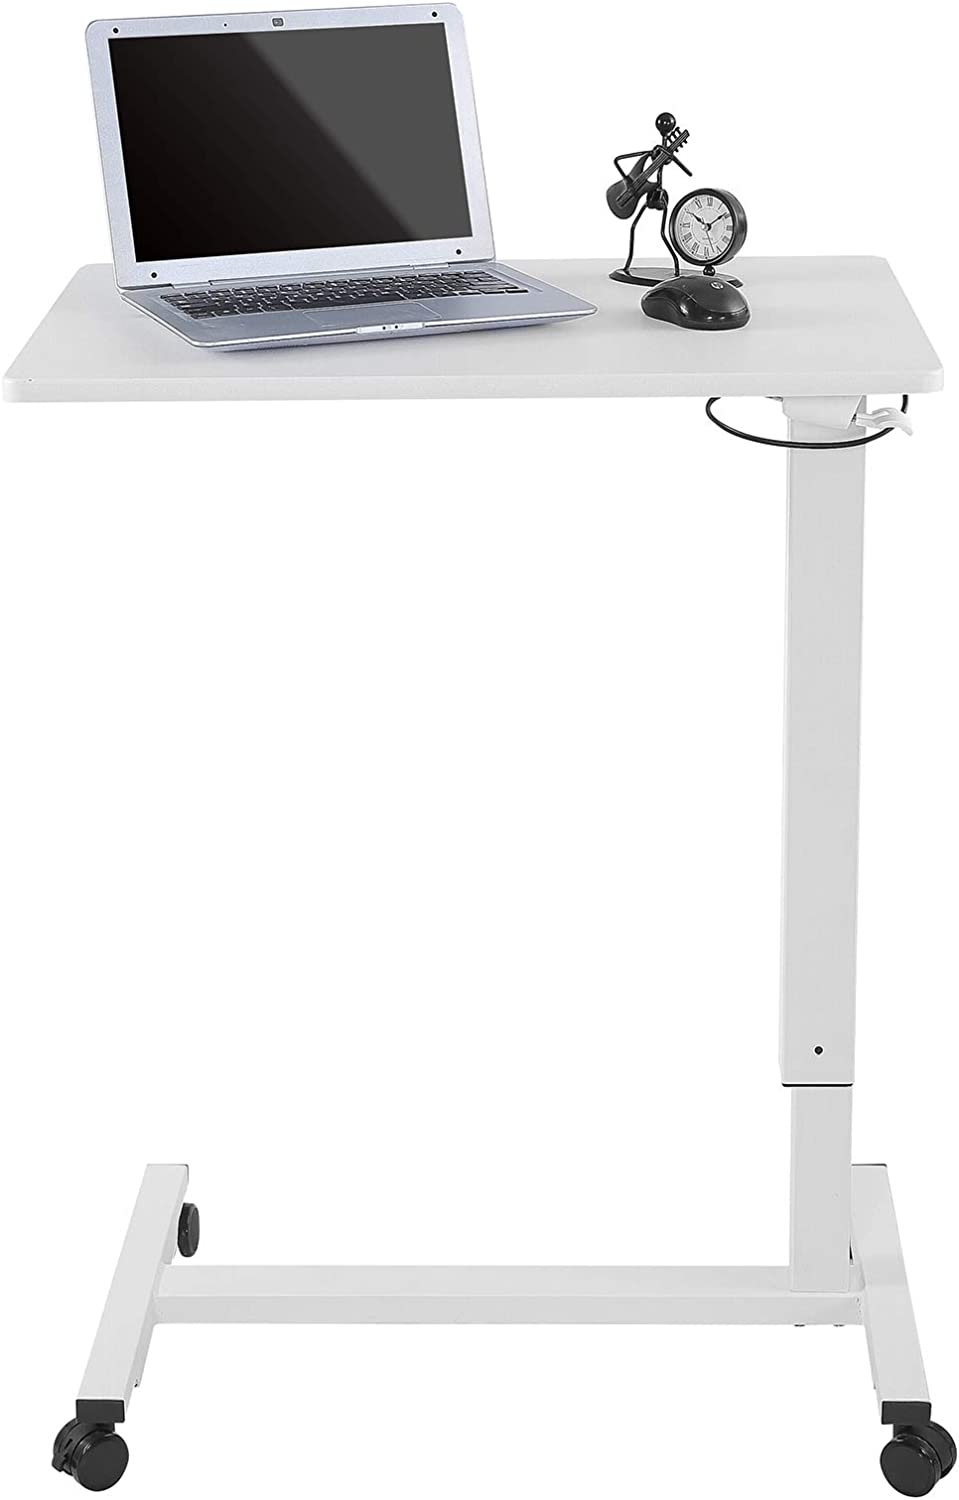 Rolling Adjustable Height Desk for Computer Office Work Kitchen,Standing Desk Laptop Cart Portable Table Mobile Desk with Wheels (White)